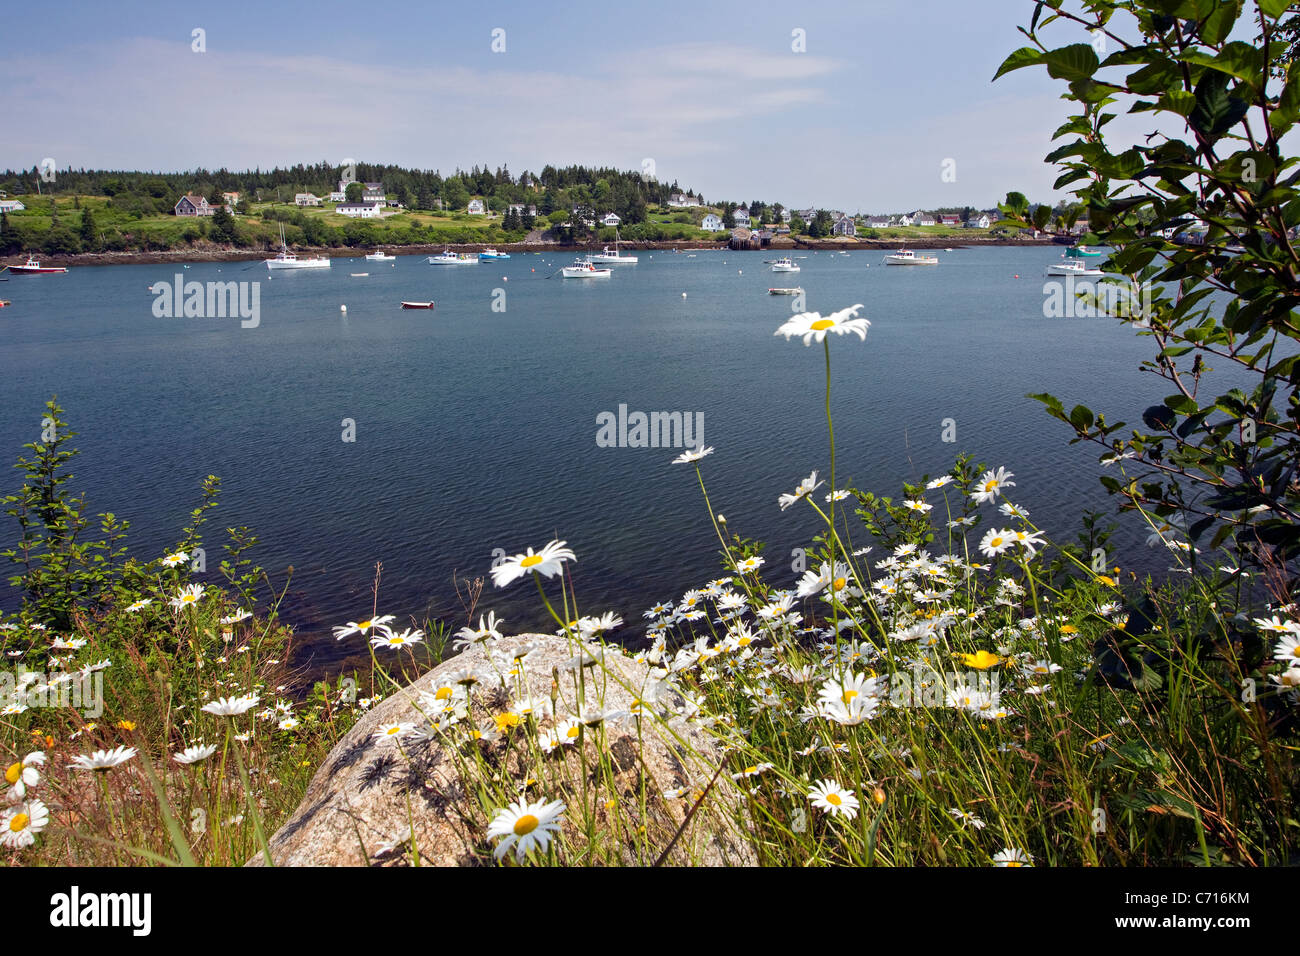 Inlet with fishing boats and daisies, fishing harbor, Machias Maine, USA - Stock Image